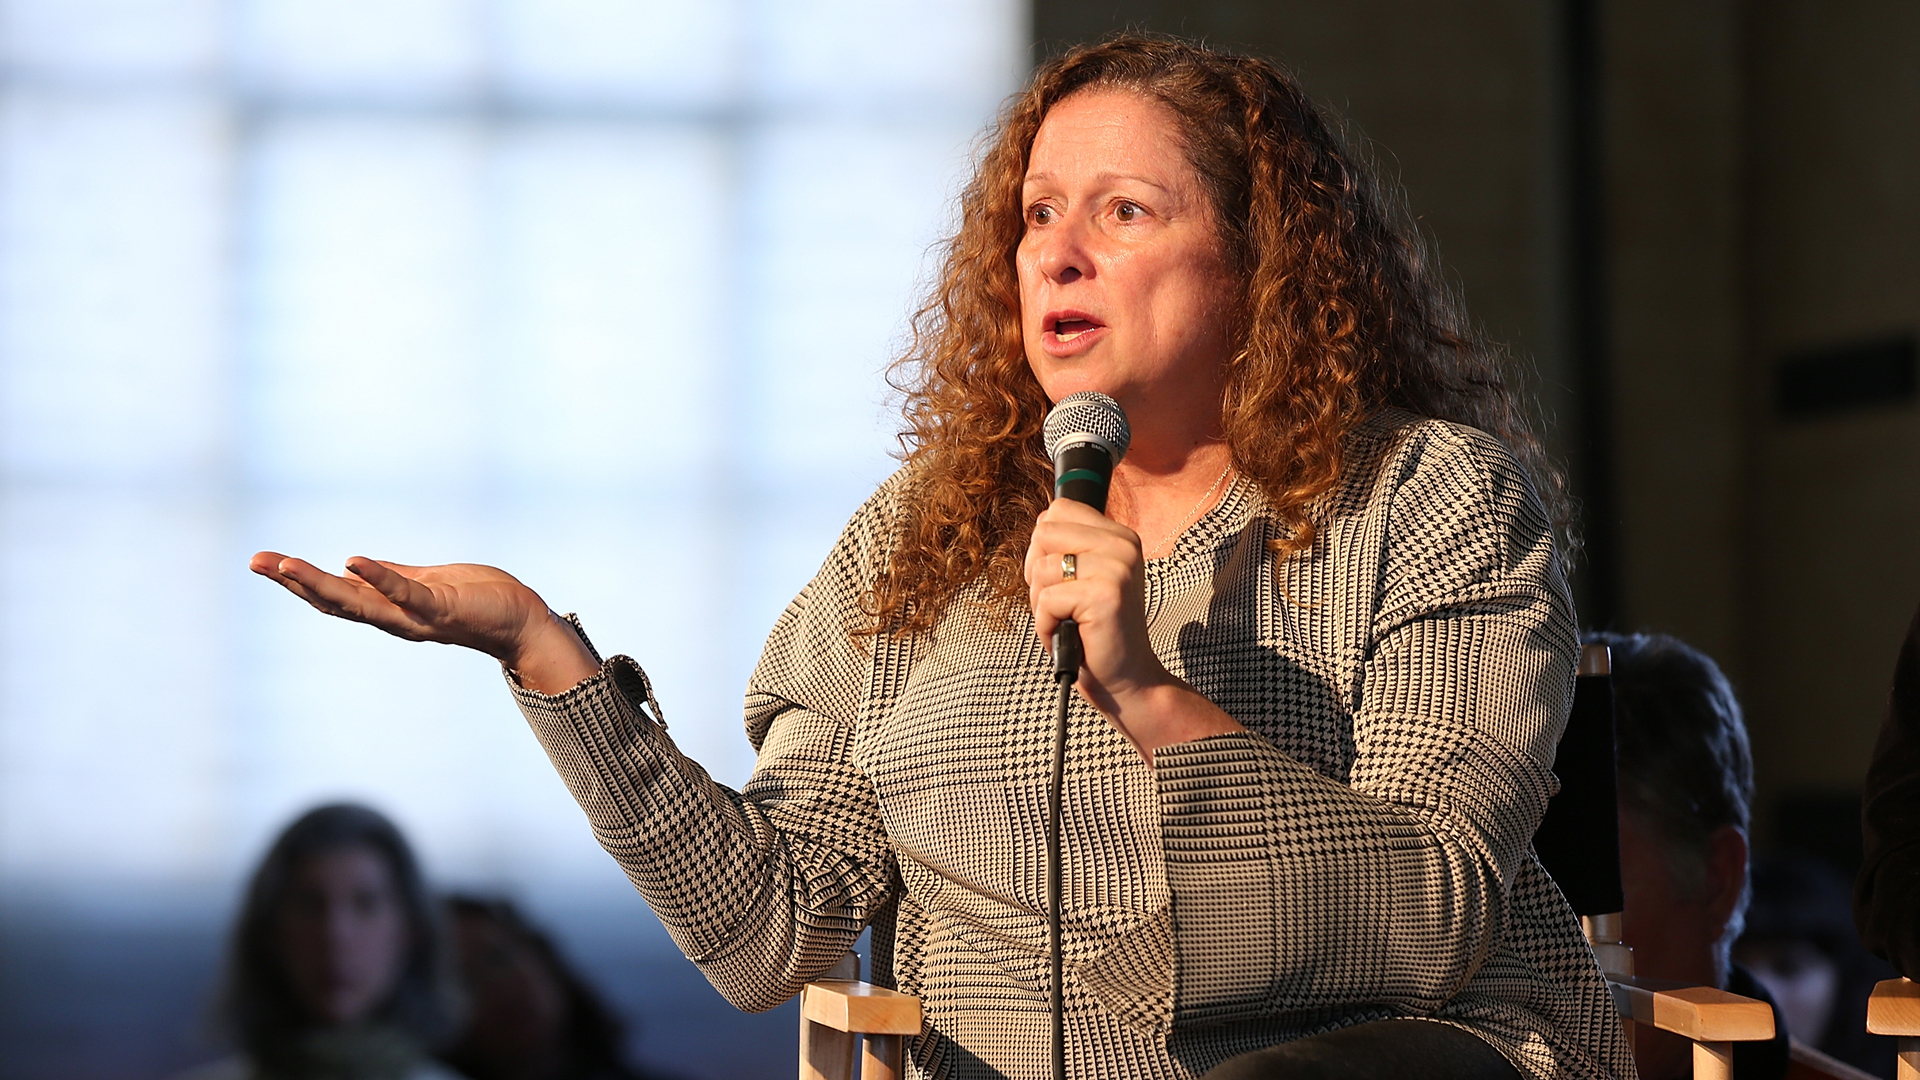 Abigail Disney speaks onstage at The Sundance Institute, Refinery29, and DOVE Chocolate Present 2018 Women at Sundance Brunch at The Shop on January 22, 2018 in Park City, Utah. (Credit: Phillip Faraone/Getty Images for Refinery29)